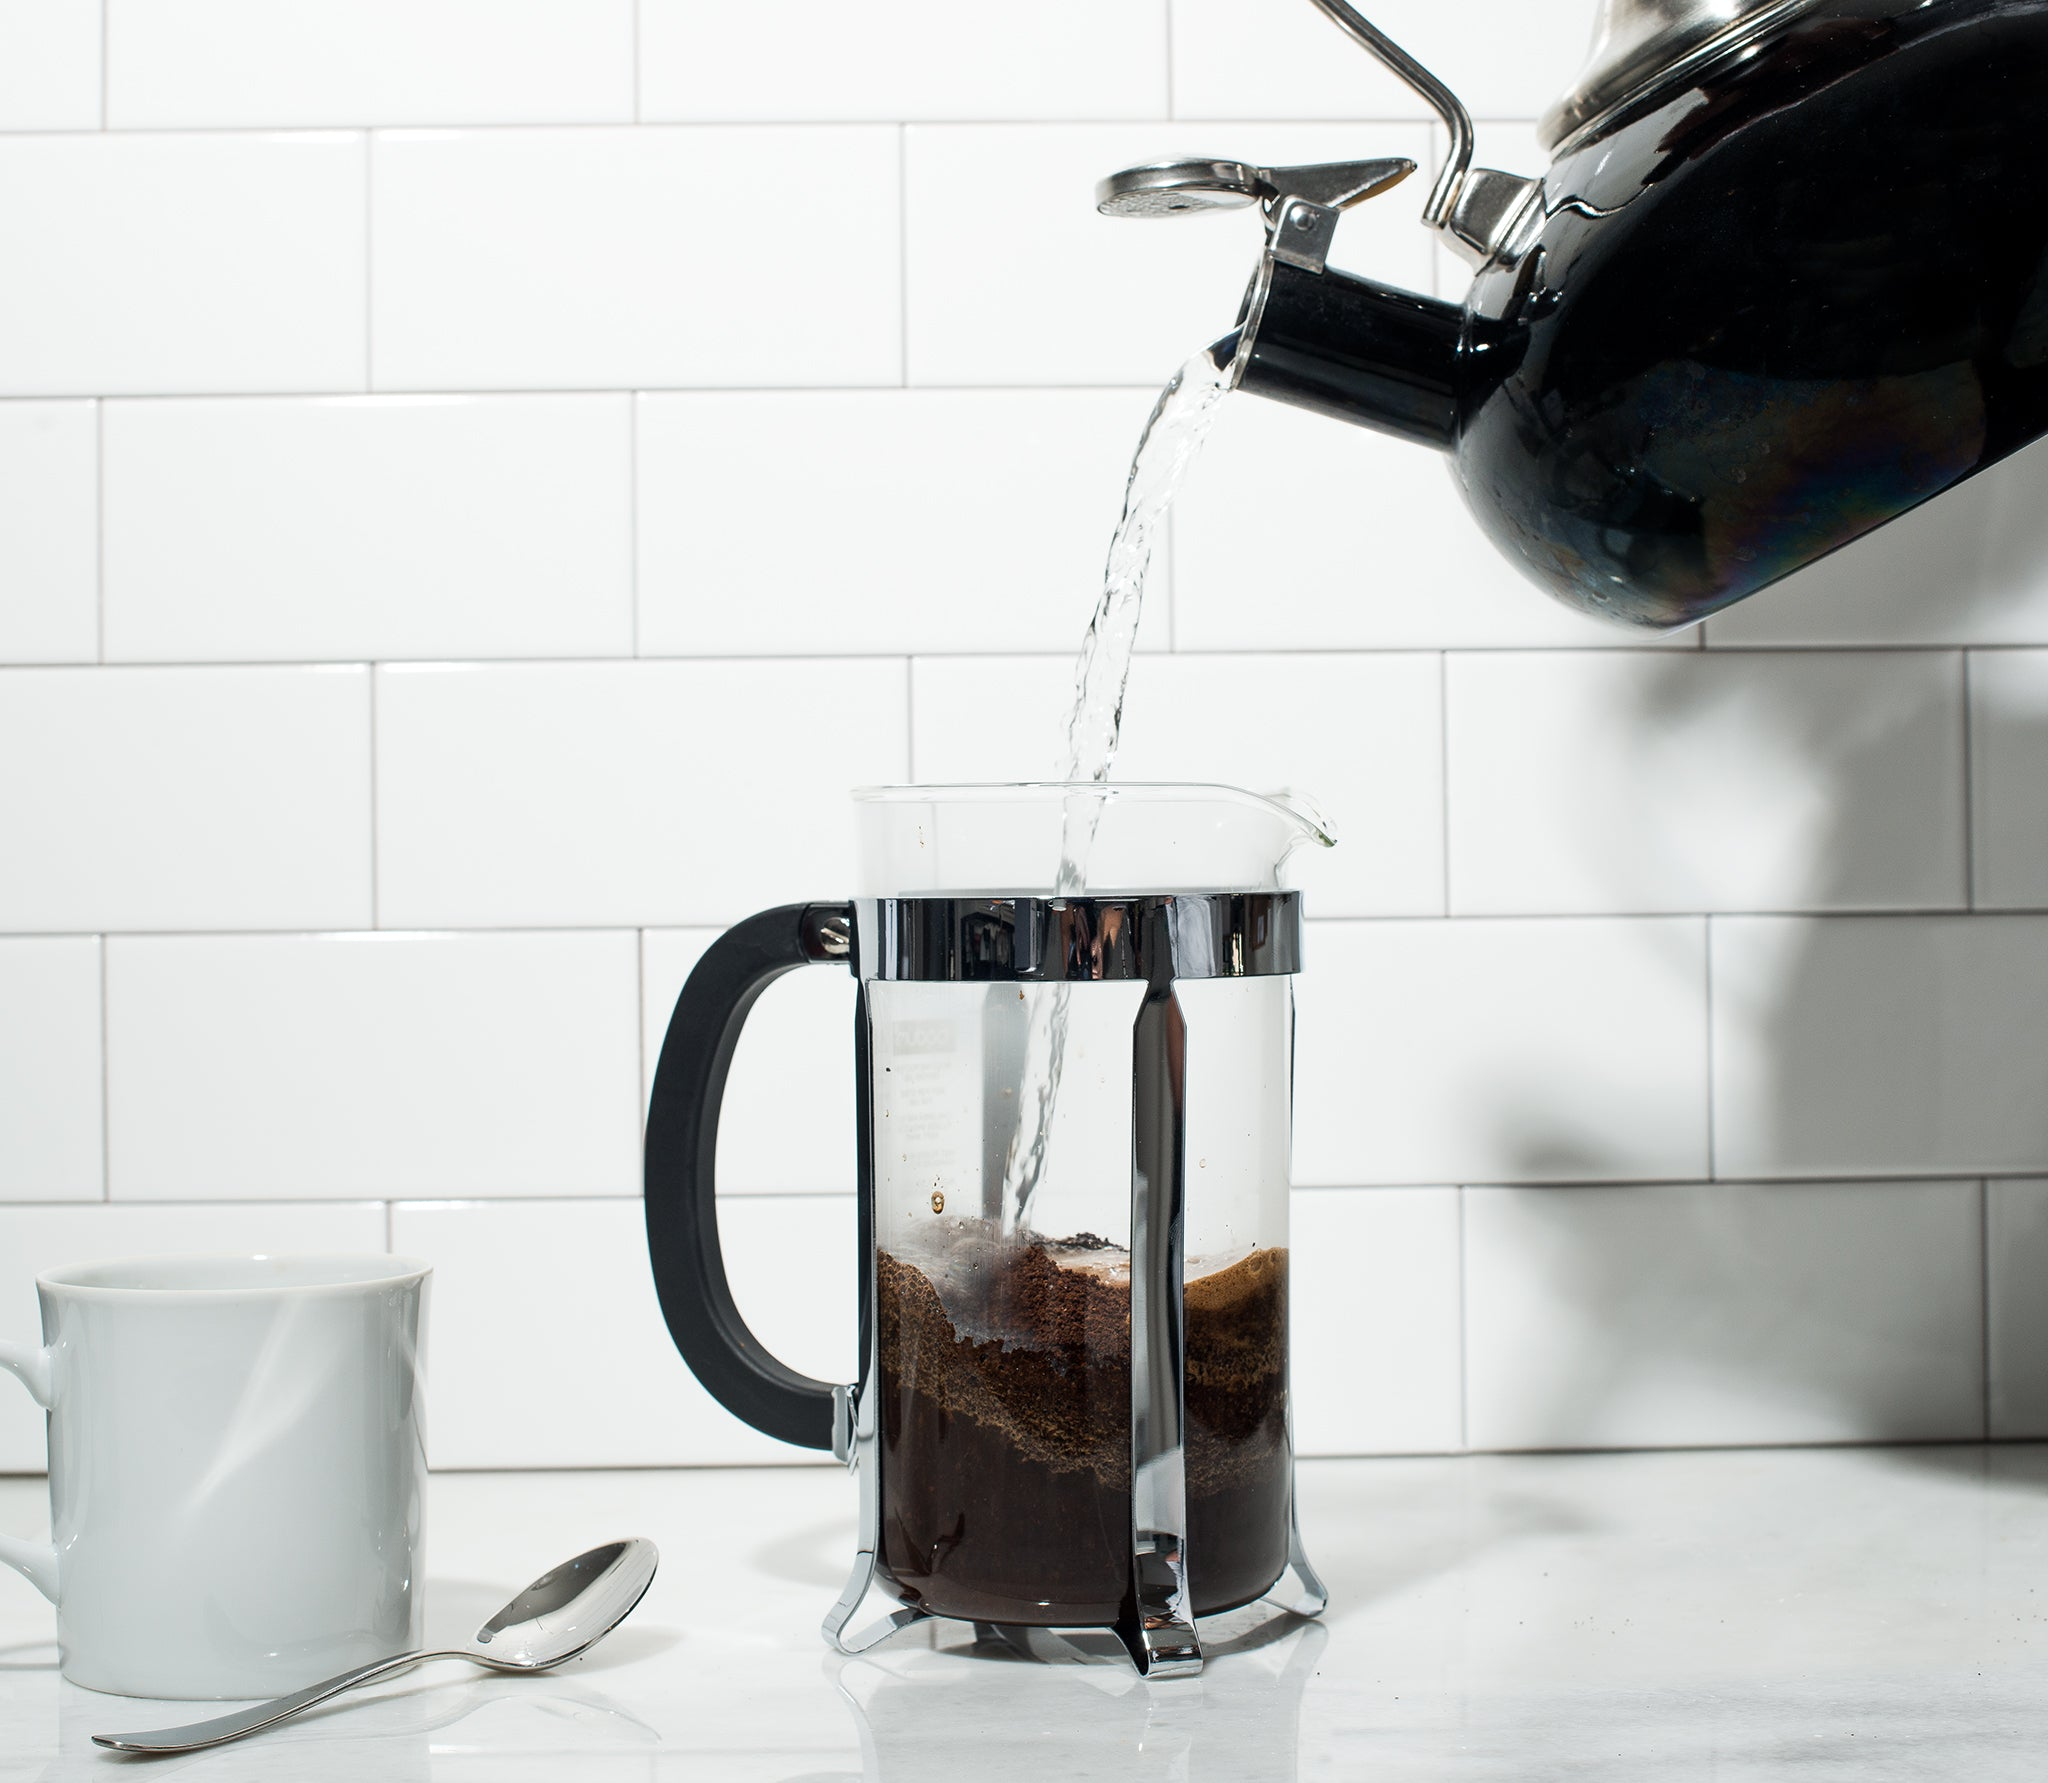 Pour water over the coffee grounds to saturate them first.